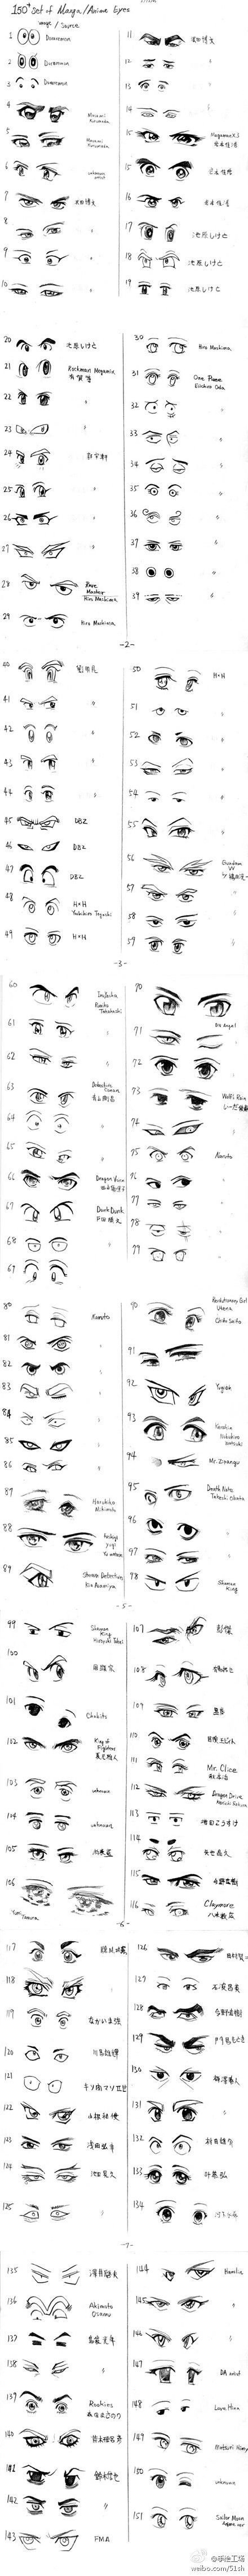 stylized eye reference for character creation how to draw manga peopleresources for art students art